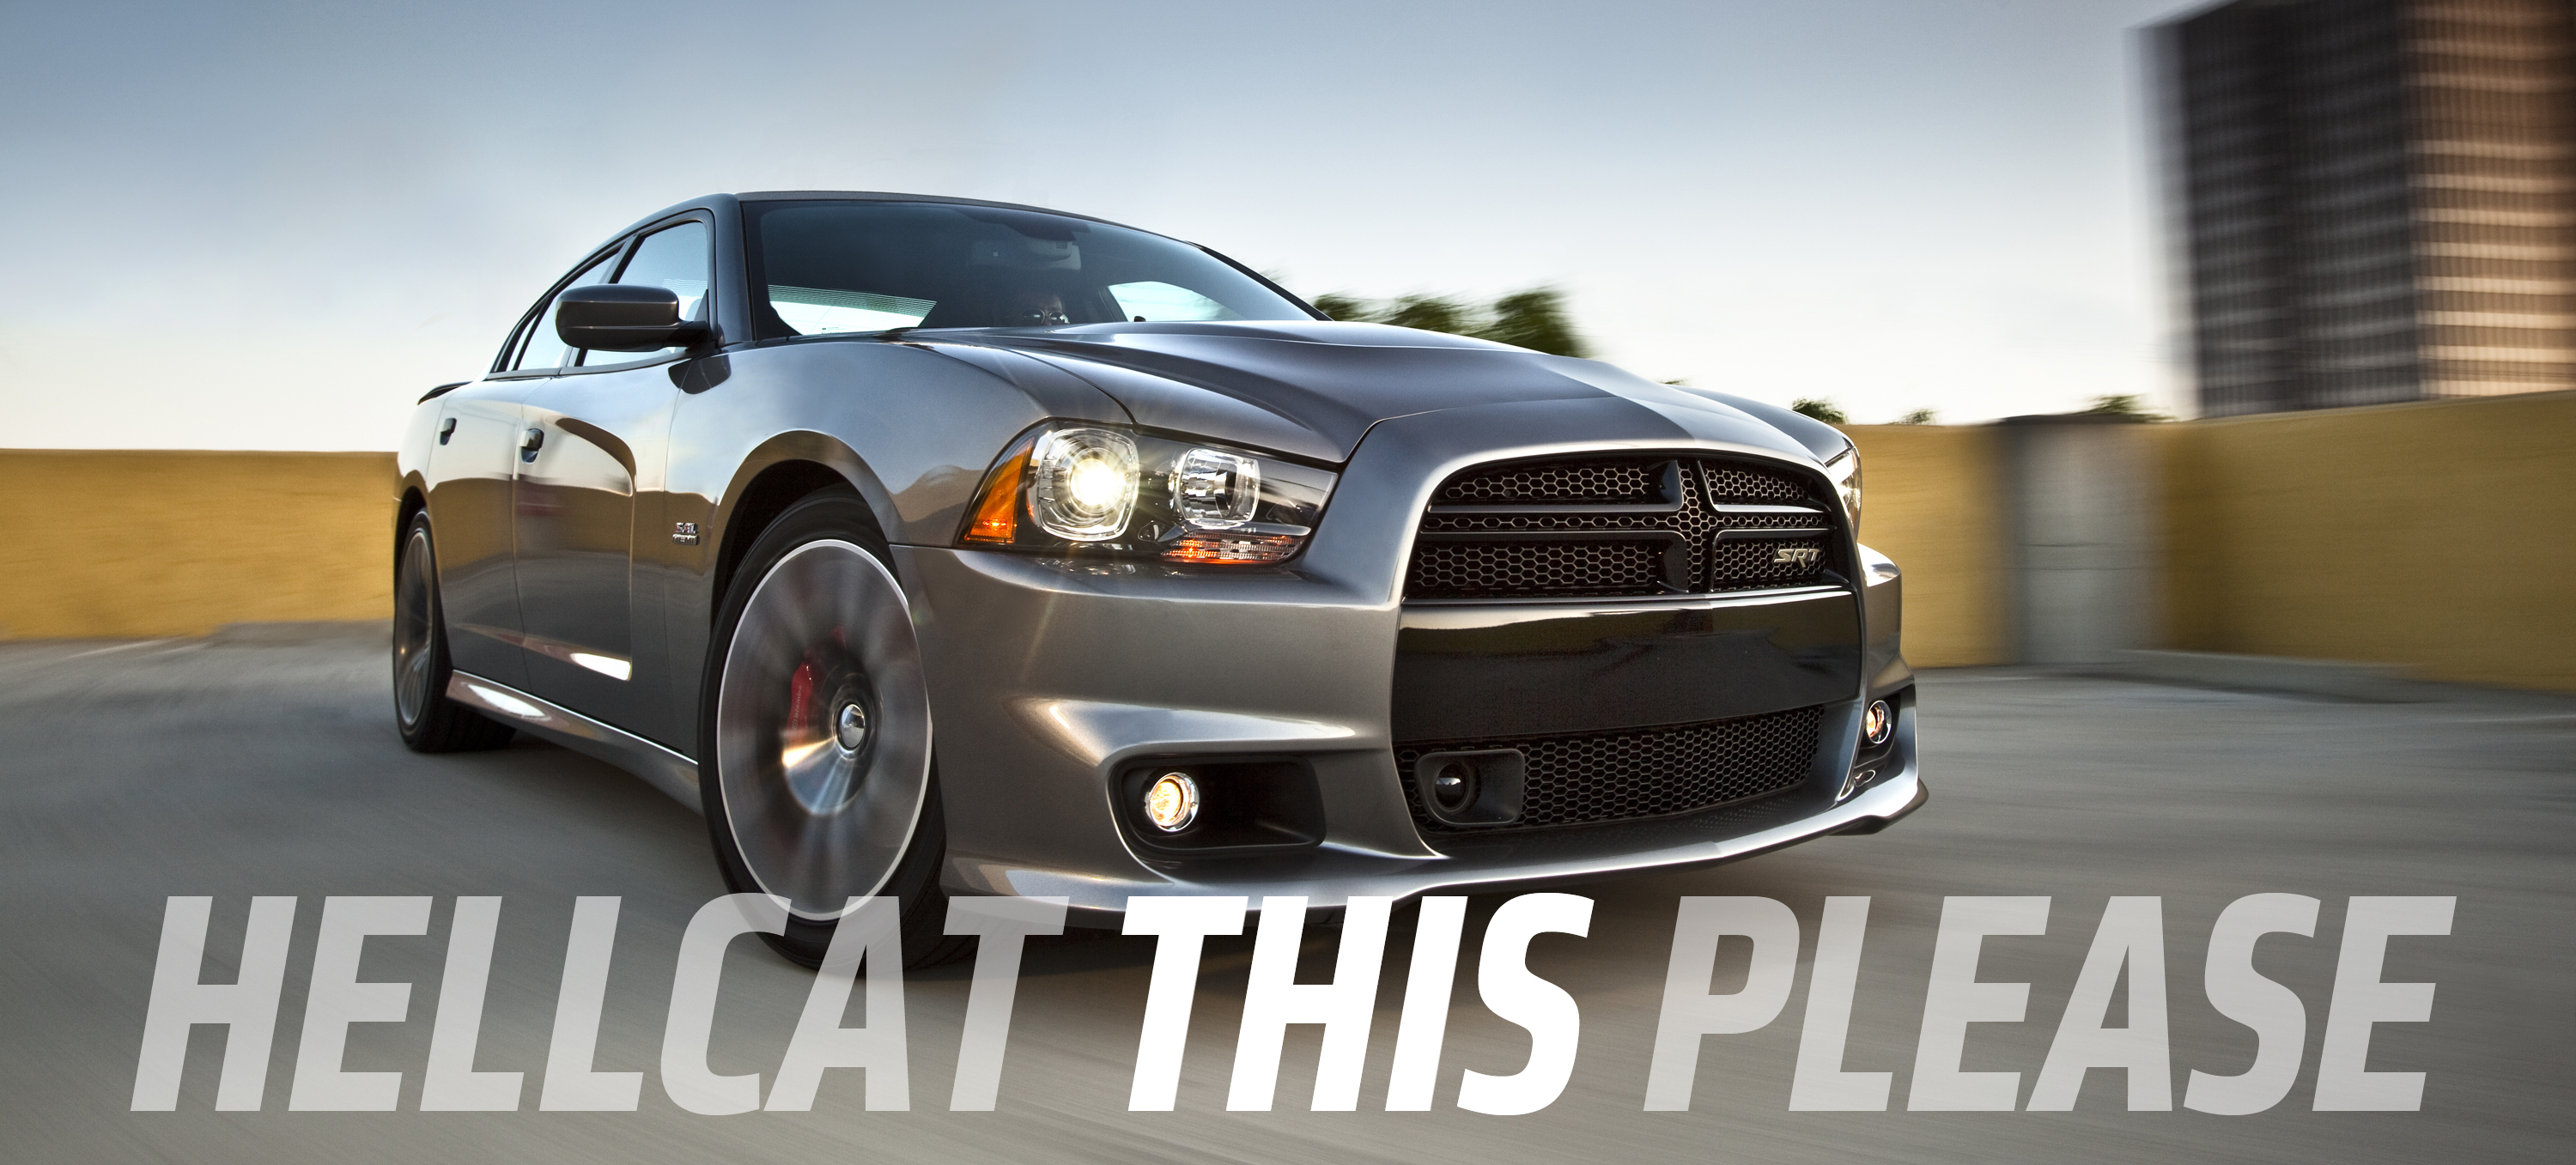 What does 707 HP sound like? Hellcat most likely.